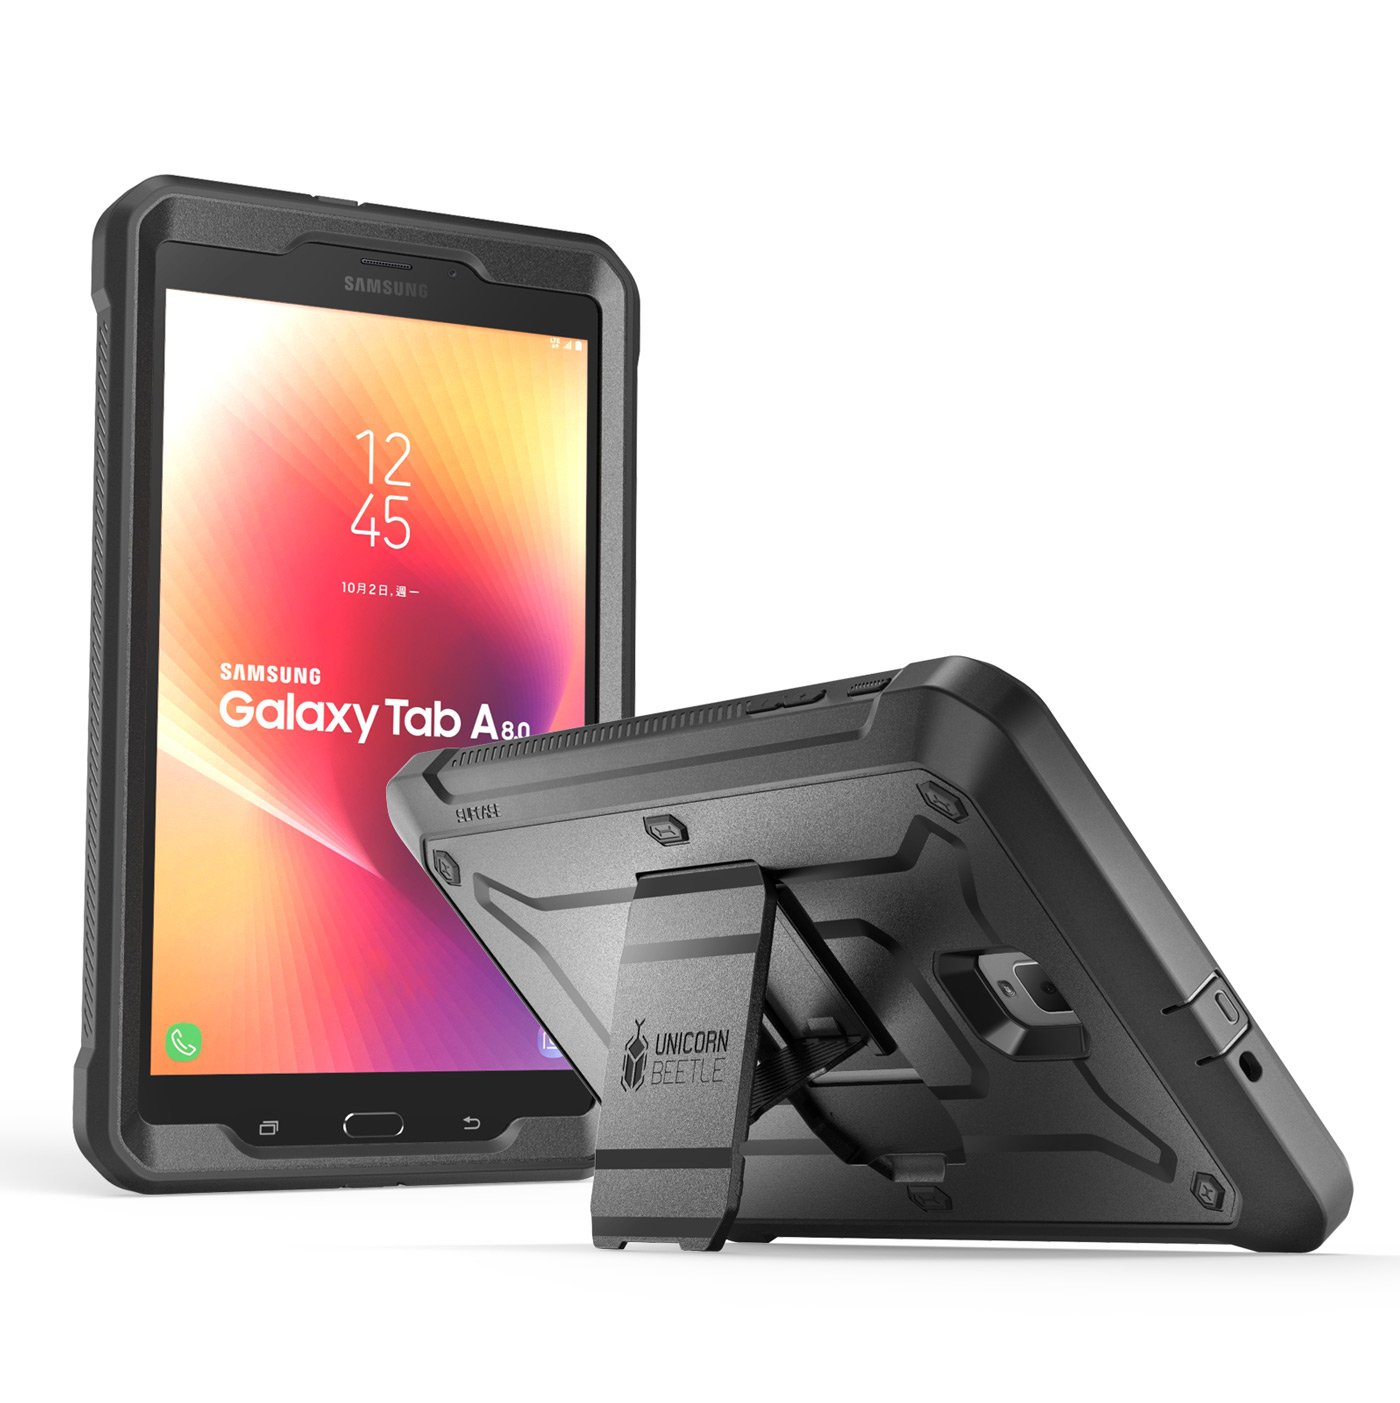 SUPCASE [UB PRO] Full-body Rugged Protective Case for Galaxy Tab A 8.0, 2017, [NOT Fit 2015 Tab A 8.0 SM-T350] ,with Built-in Screen Protector for ...